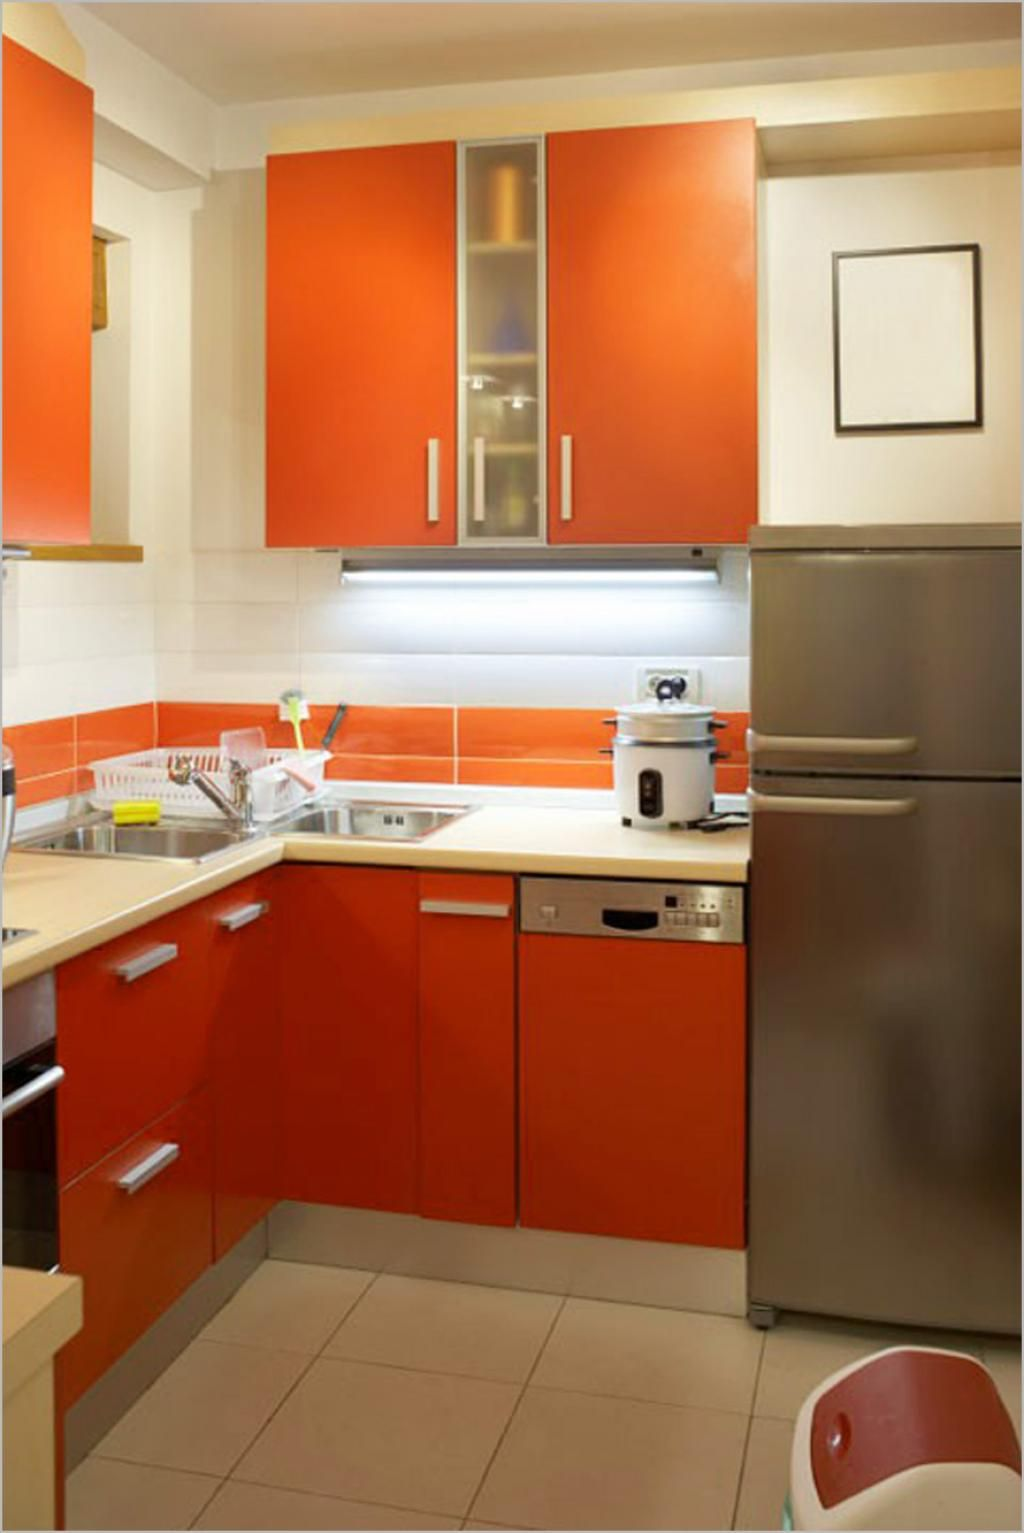 Small Kitchen Design Planning Is Very Important Since The Kitchen Can Be The Main Focal Point